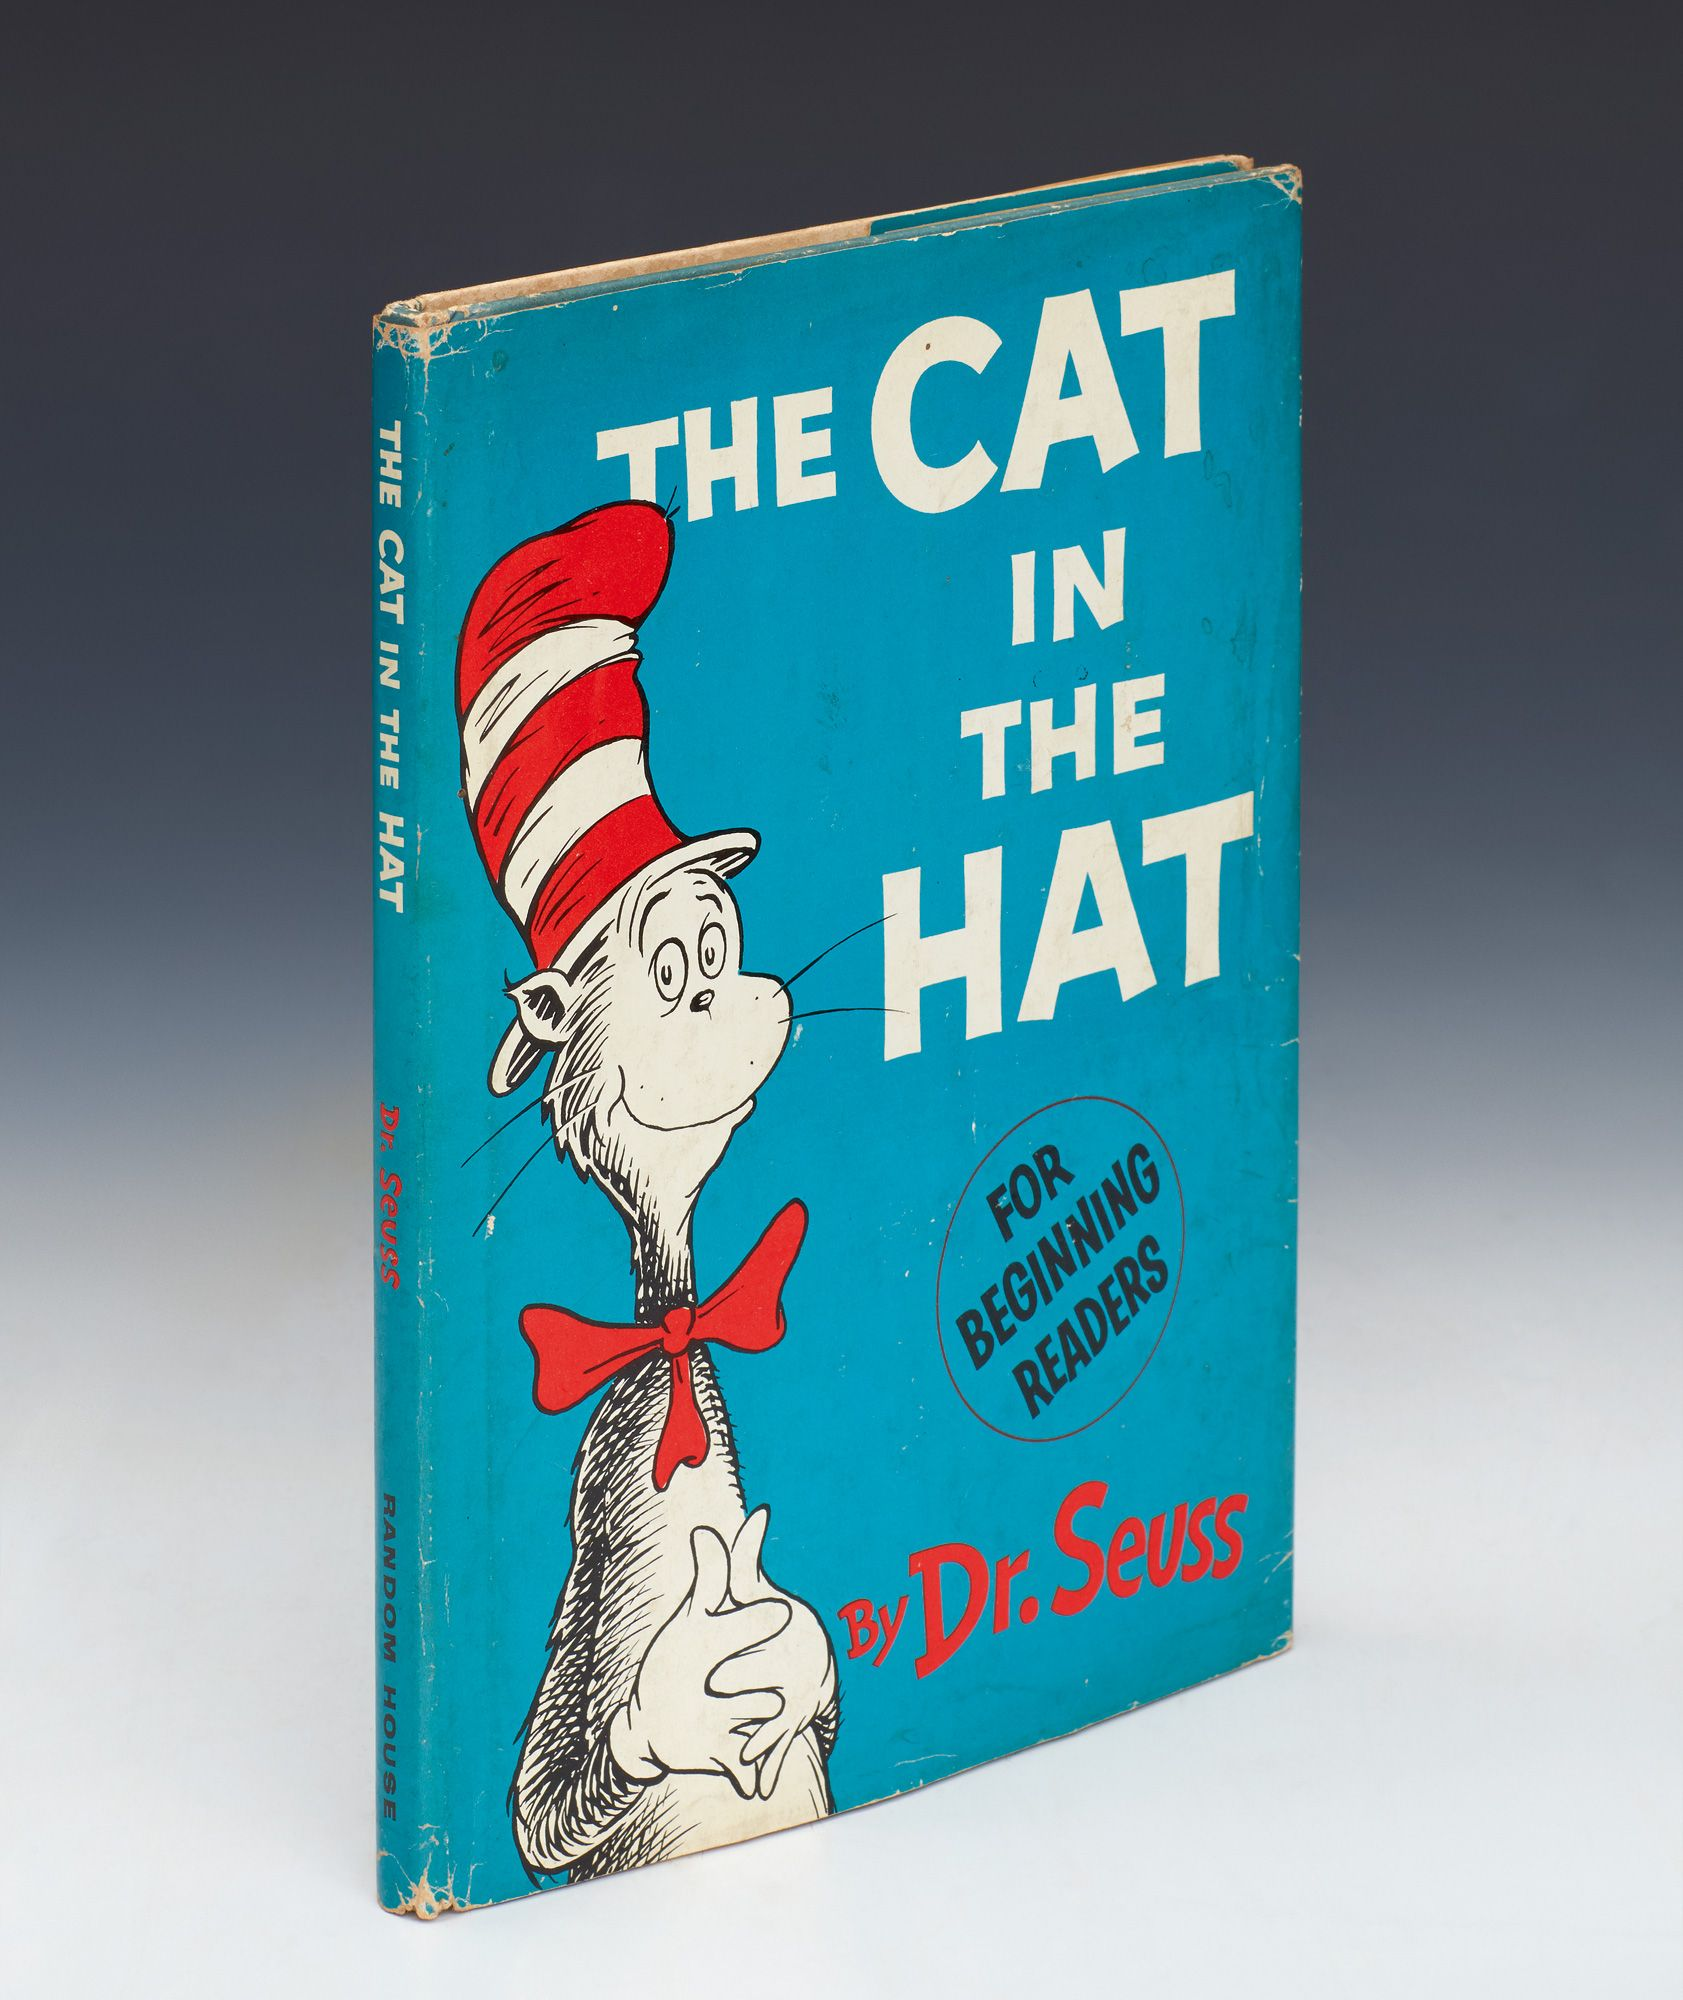 How To Spot A First Edition Sotheby S Dr Seuss The Cat In The Hat First Edition First Issue 1957 Creative Writing Stories Prehistoric Humans Edition